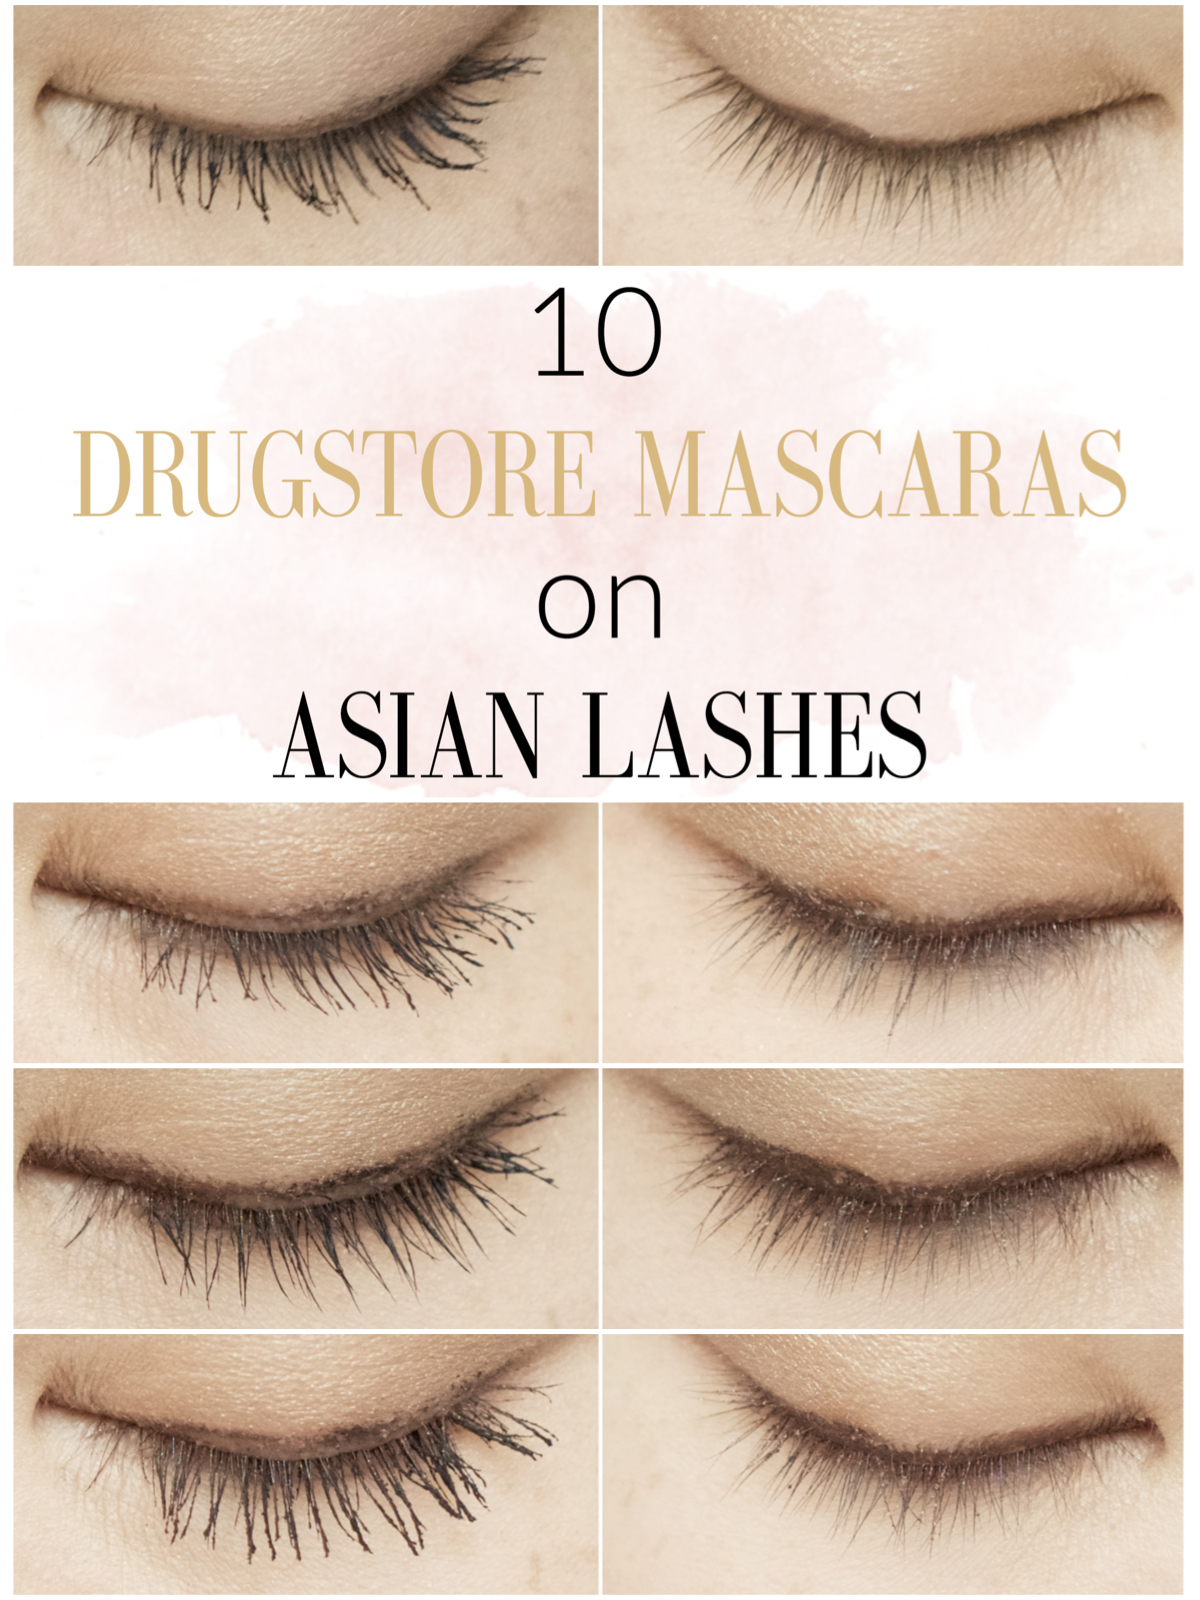 b5c7fa8c04a Major Review: 10 Drugstore Mascaras on My Asian Lashes